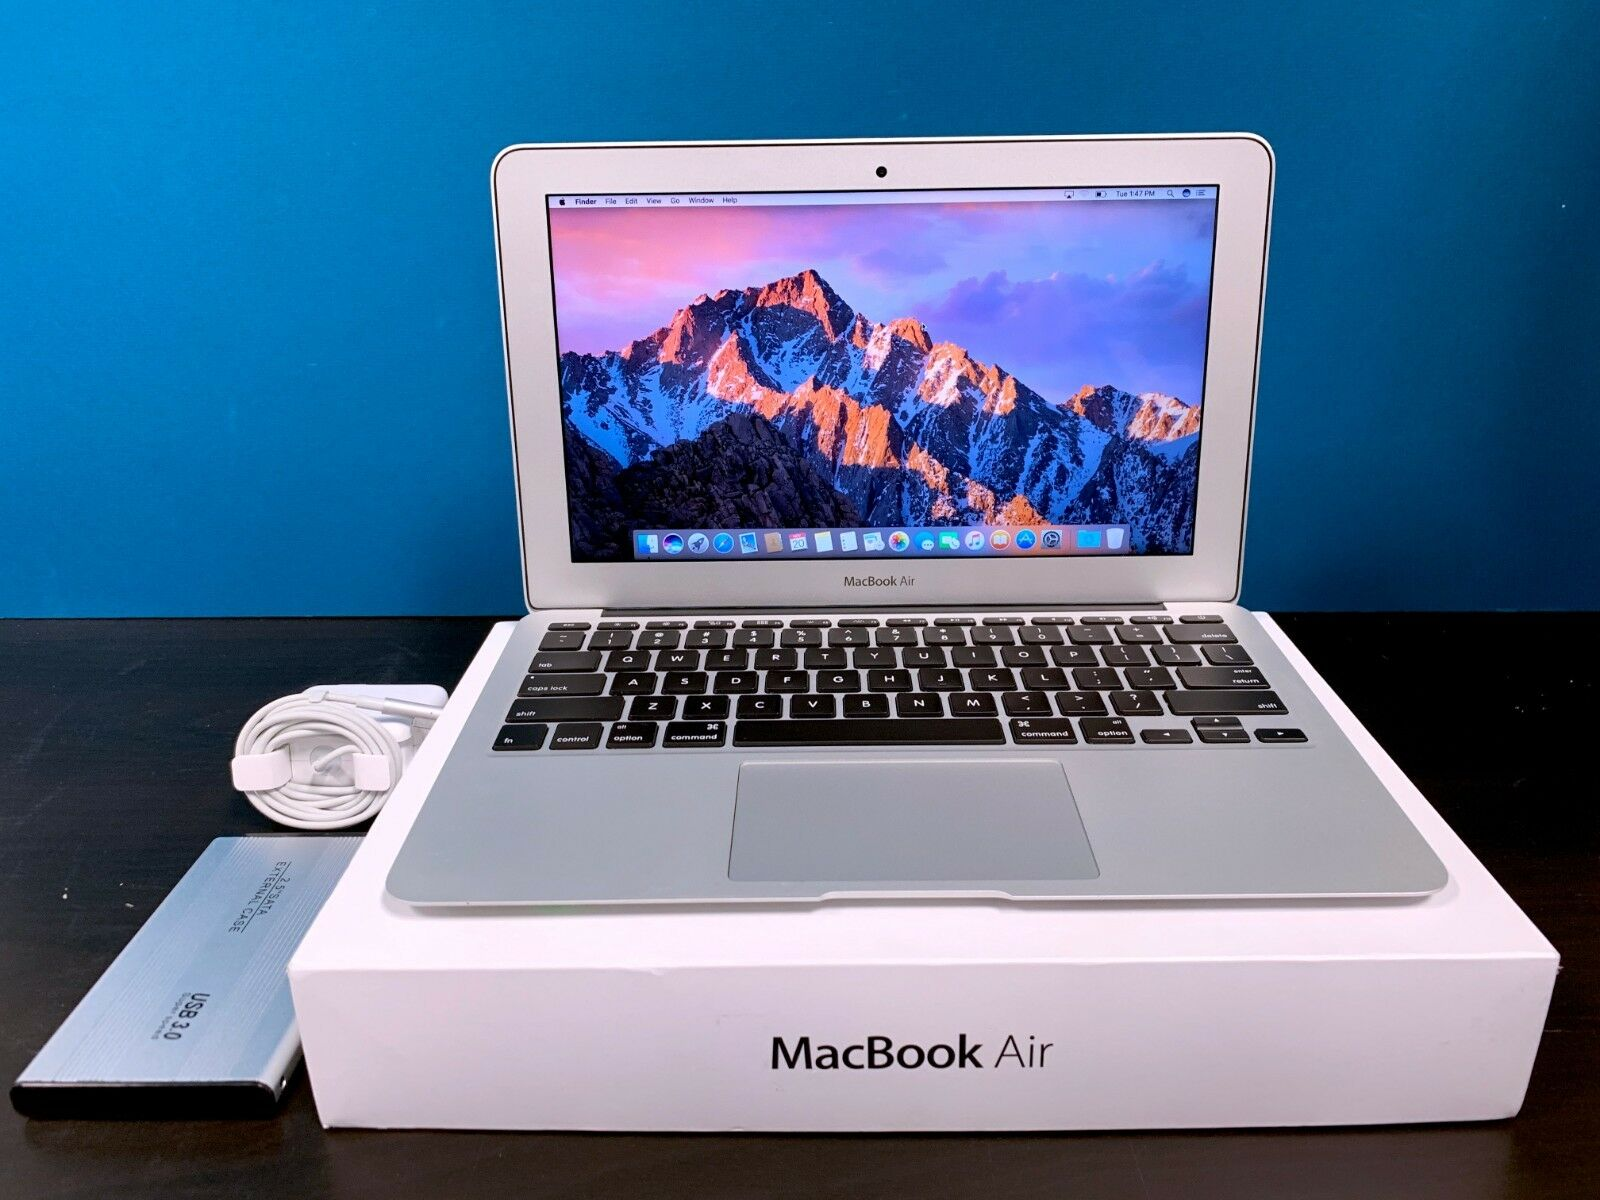 "ULTIMATE 11"" Apple MacBook Air / 1.4GHz / 128GB+ SSD Storage / 3YR Warranty!"